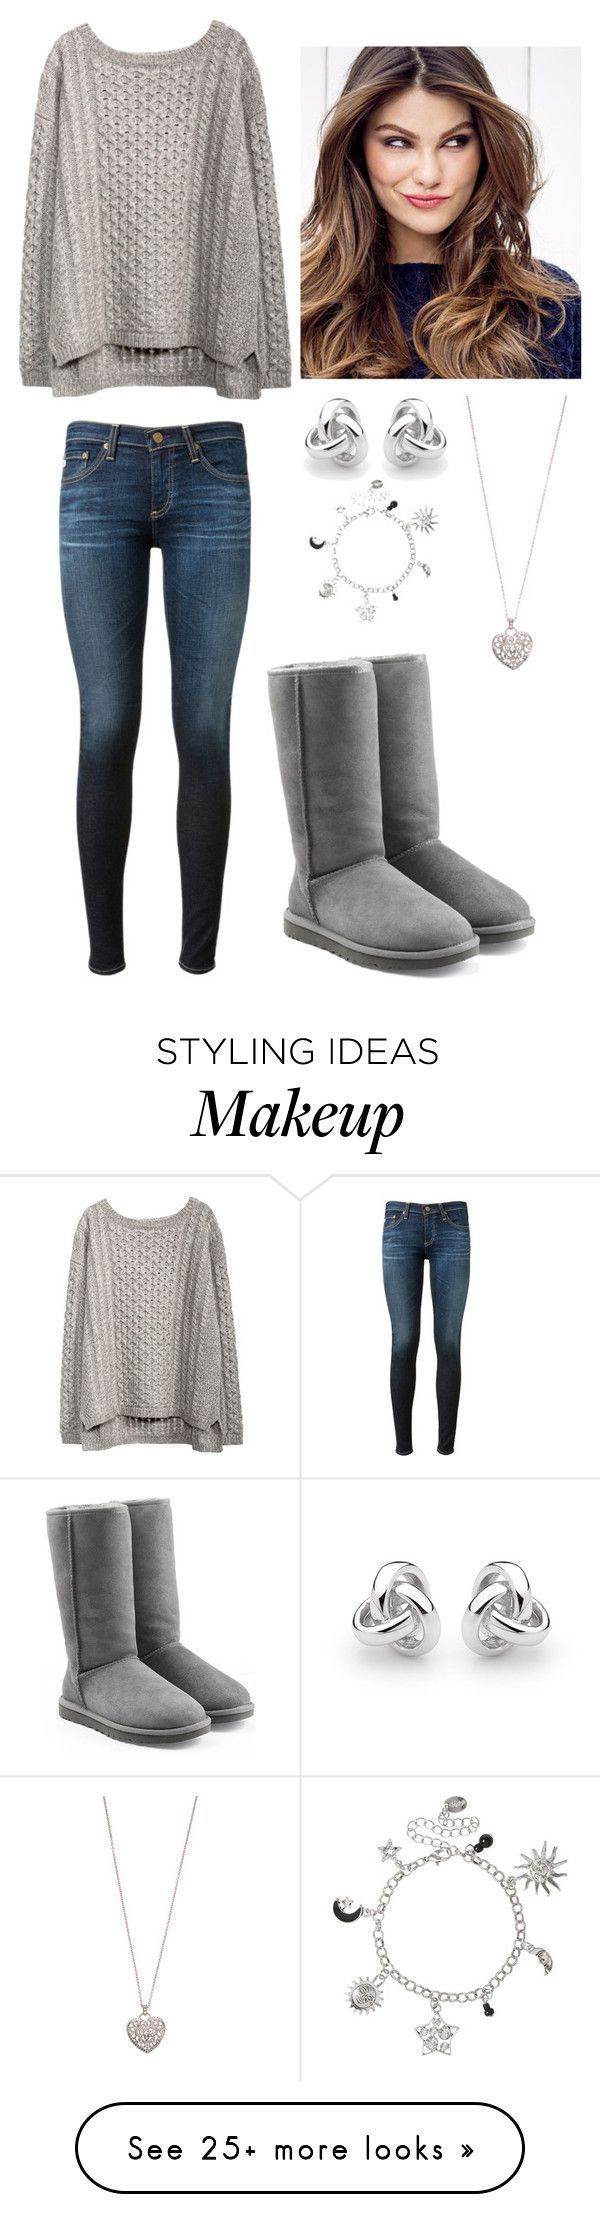 Bonfire Night (: by bailee-givens on Polyvore featuring AG Adriano Goldschmied, Georgini, Accessorize, UGG Australia and ULTA